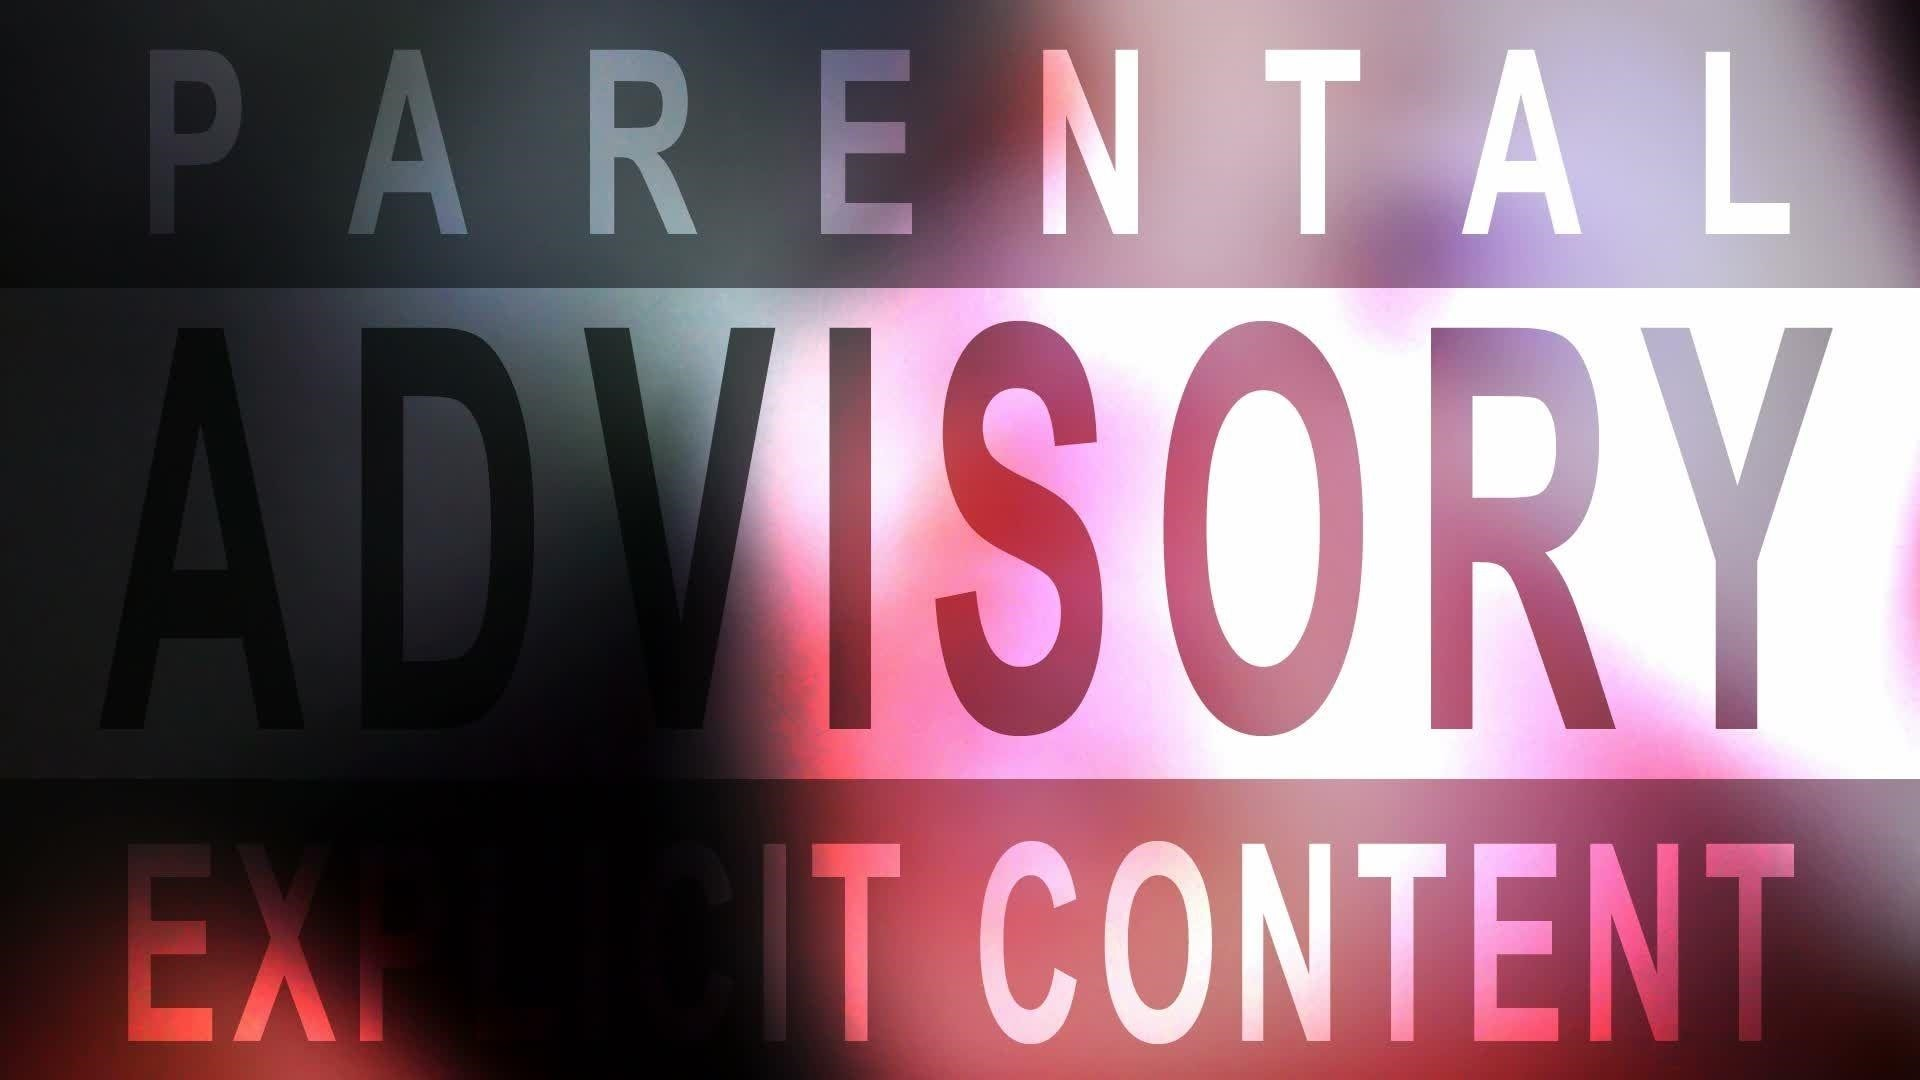 Parental Advisory Wallpaper